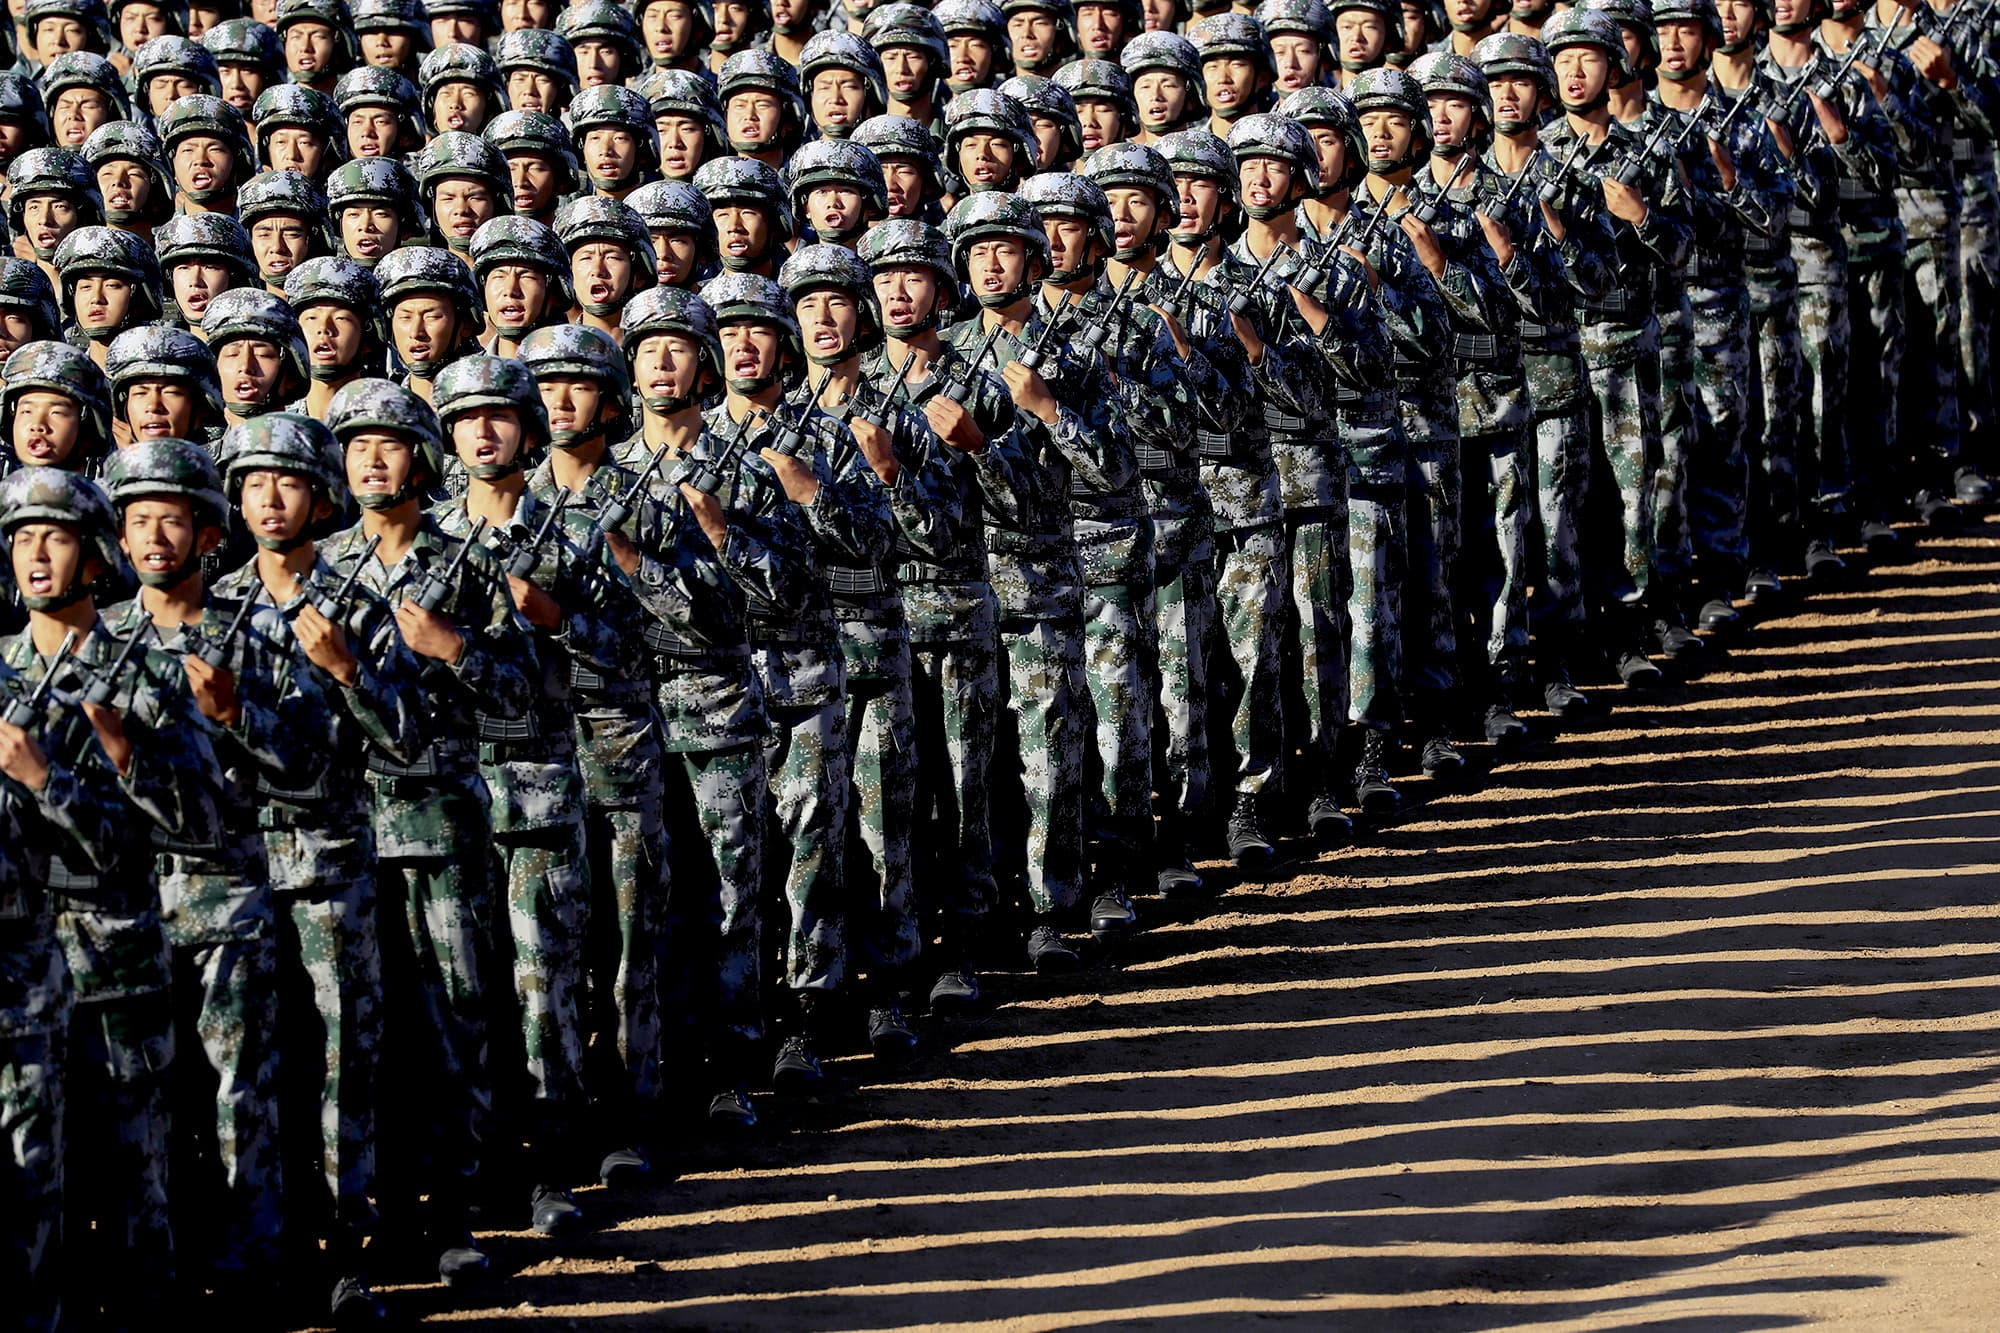 In this photo released by China's Xinhua News Agency, Chinese People's Liberation Army (PLA) troops march in formation Sunday, July 30, 2017 as they arrive for a military parade to commemorate the 90th anniversary of the founding of the PLA. ─ AP